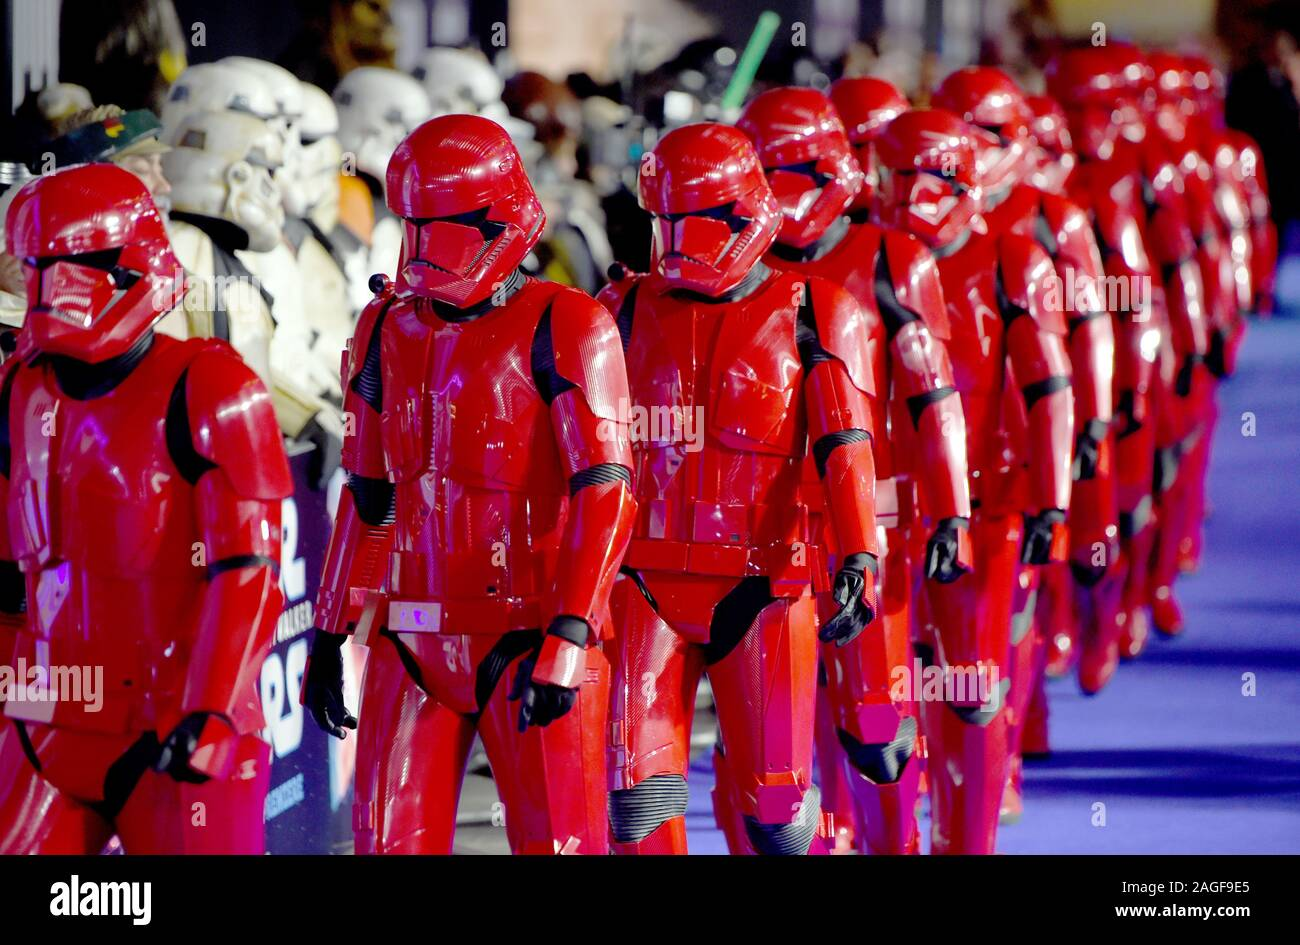 Sith Stormtroopers High Resolution Stock Photography And Images Alamy